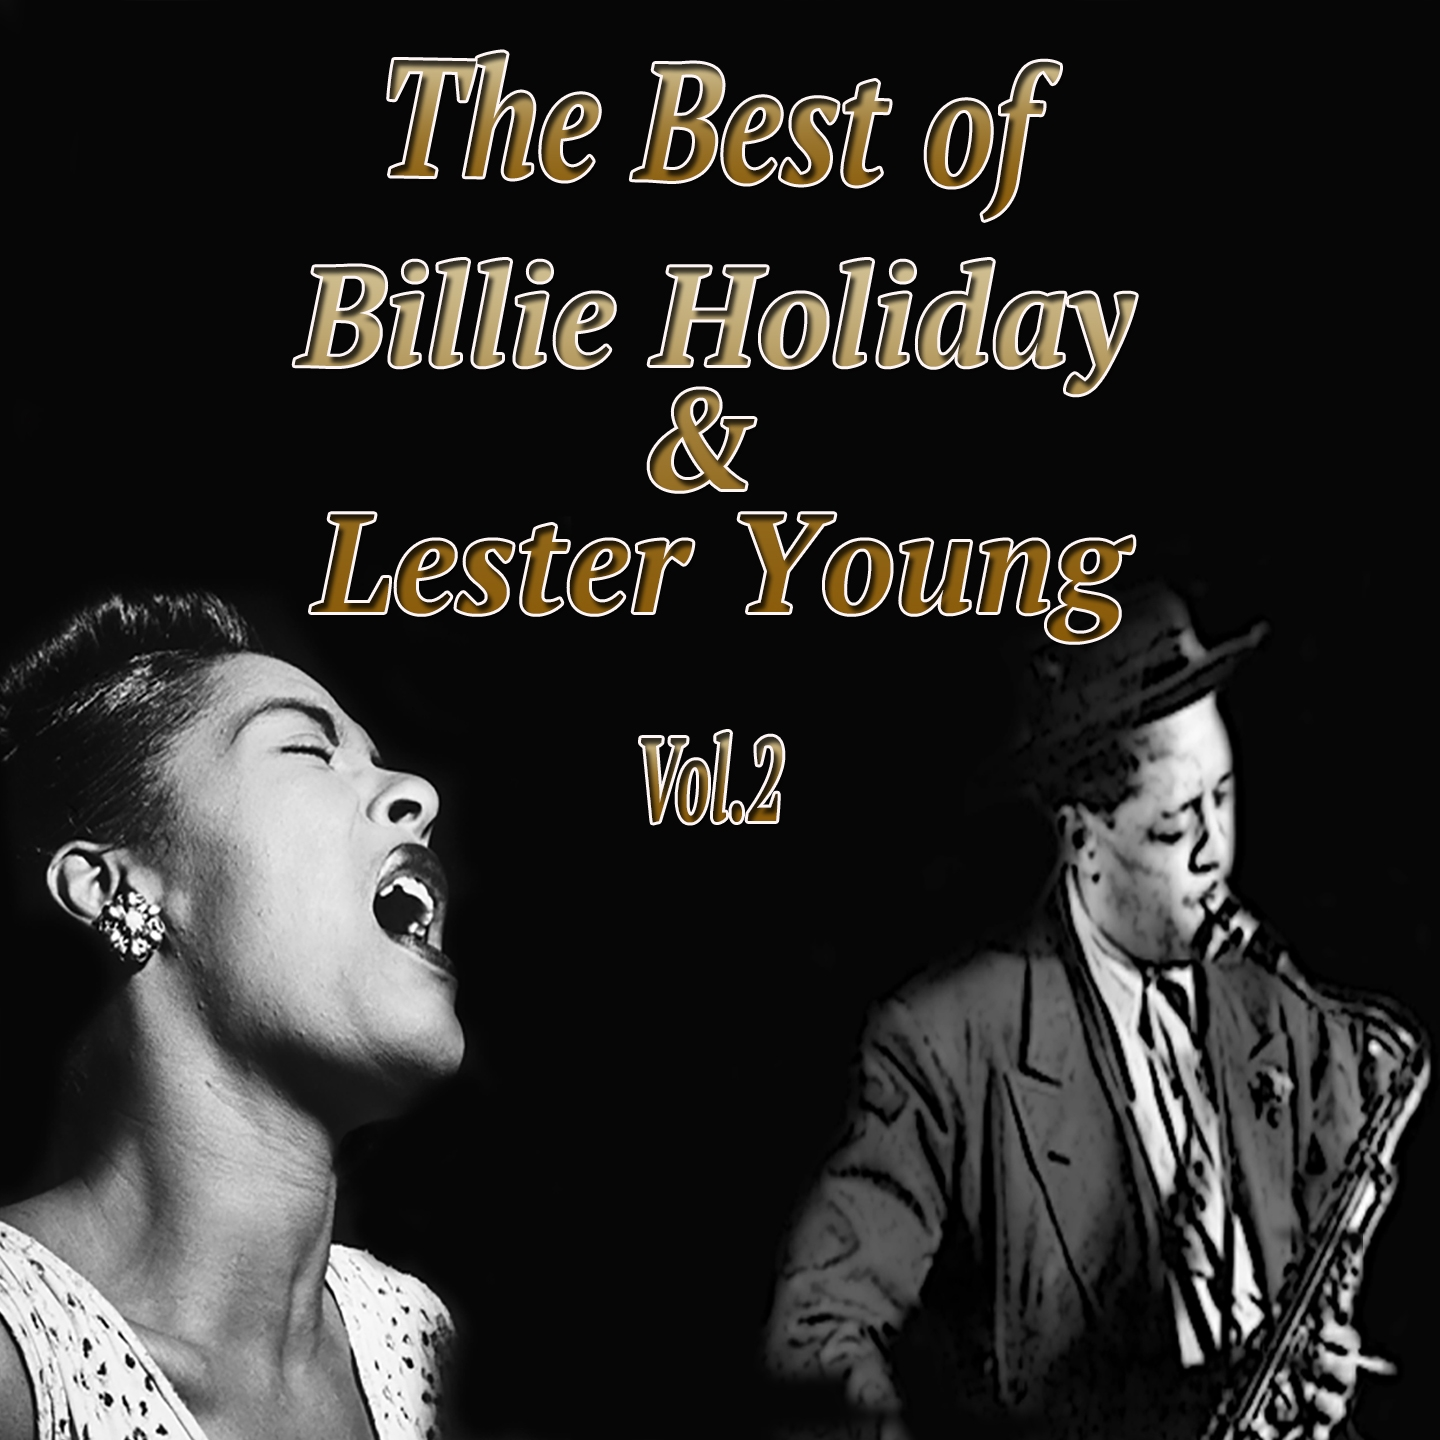 The Best of Billie Holiday & Lester Young, Vol. 2